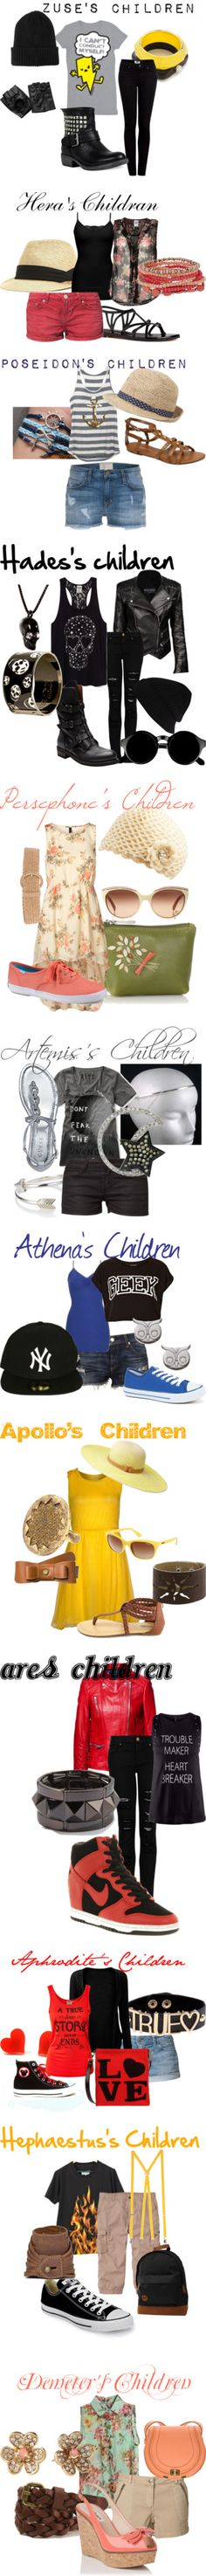 """Greek Gods and Godesses"" by iskbug on Polyvore - 'Zeus' sorry that was bothering me :))"